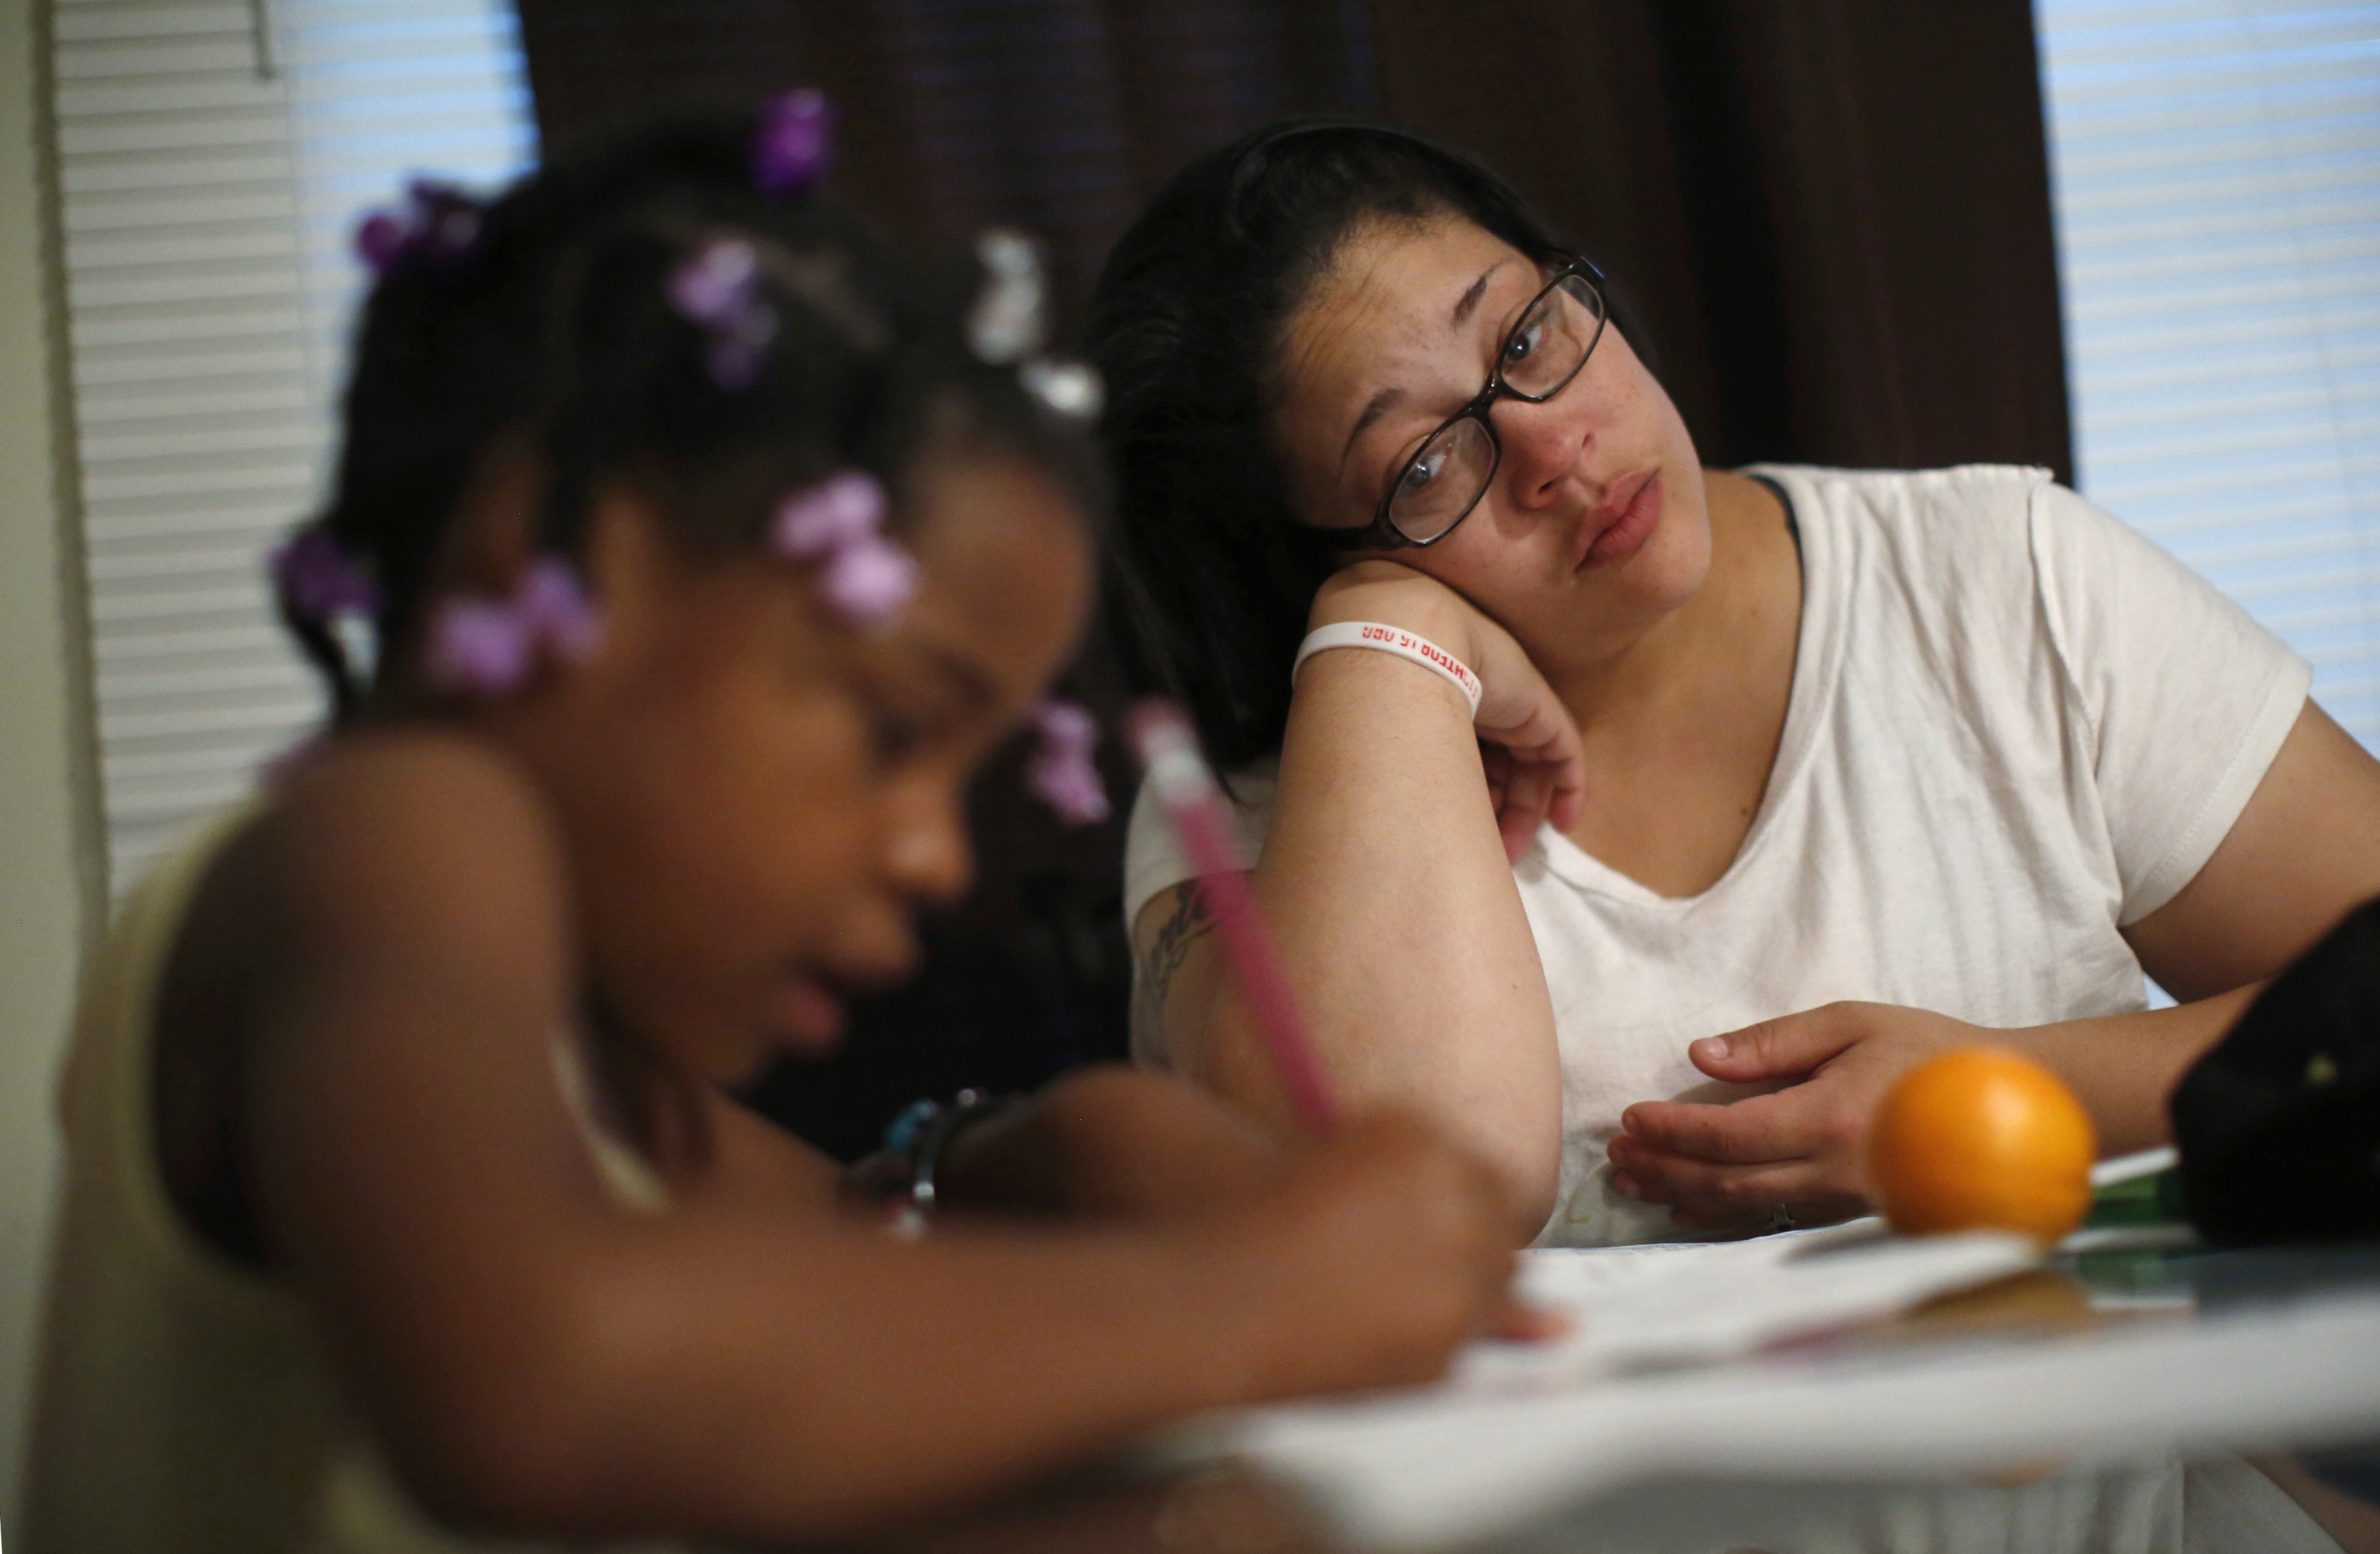 Delores Leonard (R) helps her daughter Erin with her homework at the breakfast table before heading to work at a McDonald's Restaurant in Chicago, Illinois, September 25, 2014. Leonard, a single mother raising two daughters, has been working at McDonald's for seven years and has never made more than minimum wage.  Picture taken September 25, 2014.   REUTERS/Jim Young (UNITED STATES - Tags: BUSINESS EMPLOYMENT TPX IMAGES OF THE DAY) - GM1EAAH1LAM01